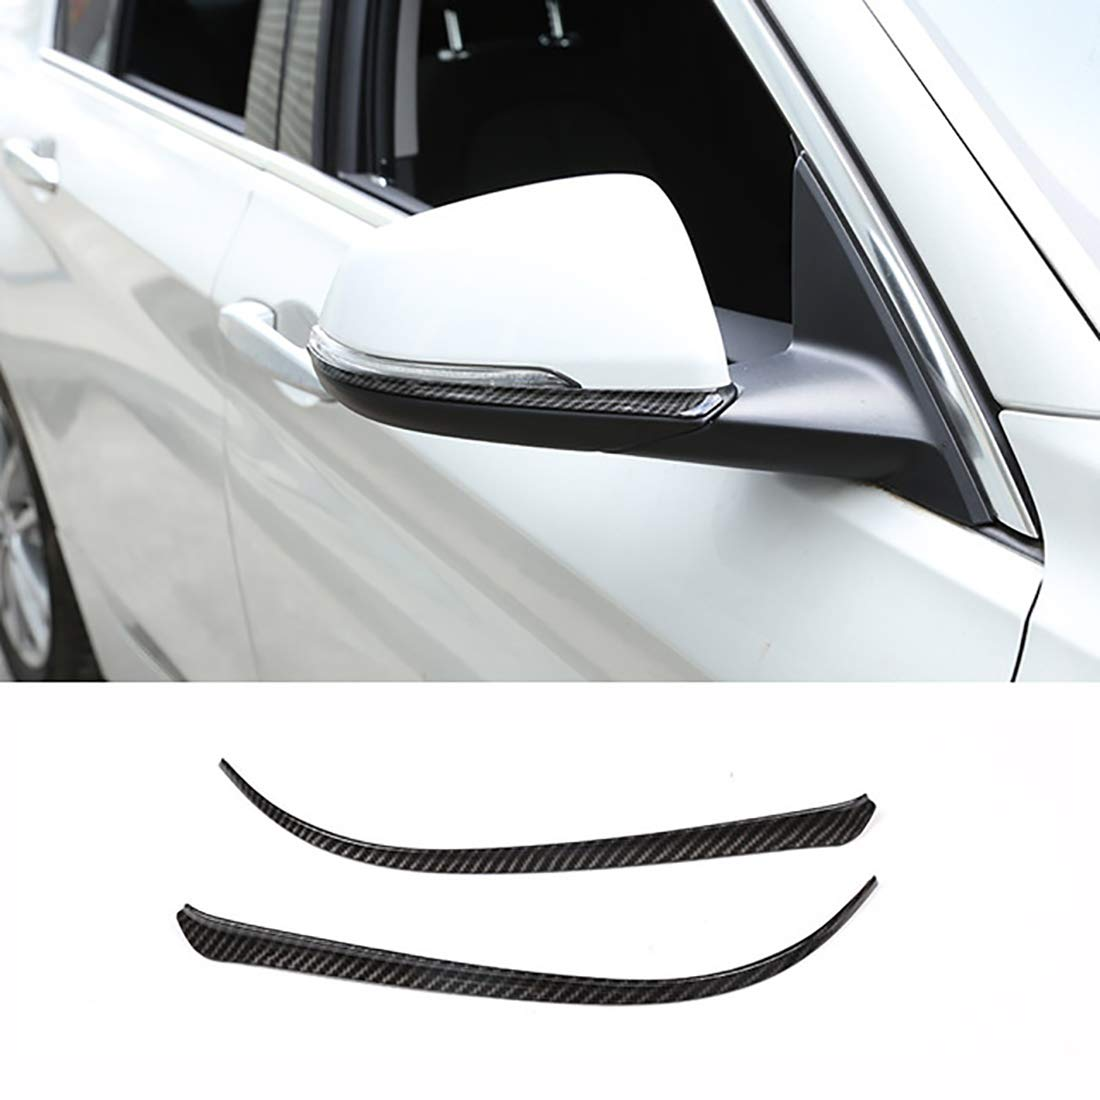 Carbon Fiber ABS Side Rearview Mirror Strips Trim For X2 F47 2018,For X1 F48 1 2 series Active Tourer f45 f46 218i 16-19 carwest